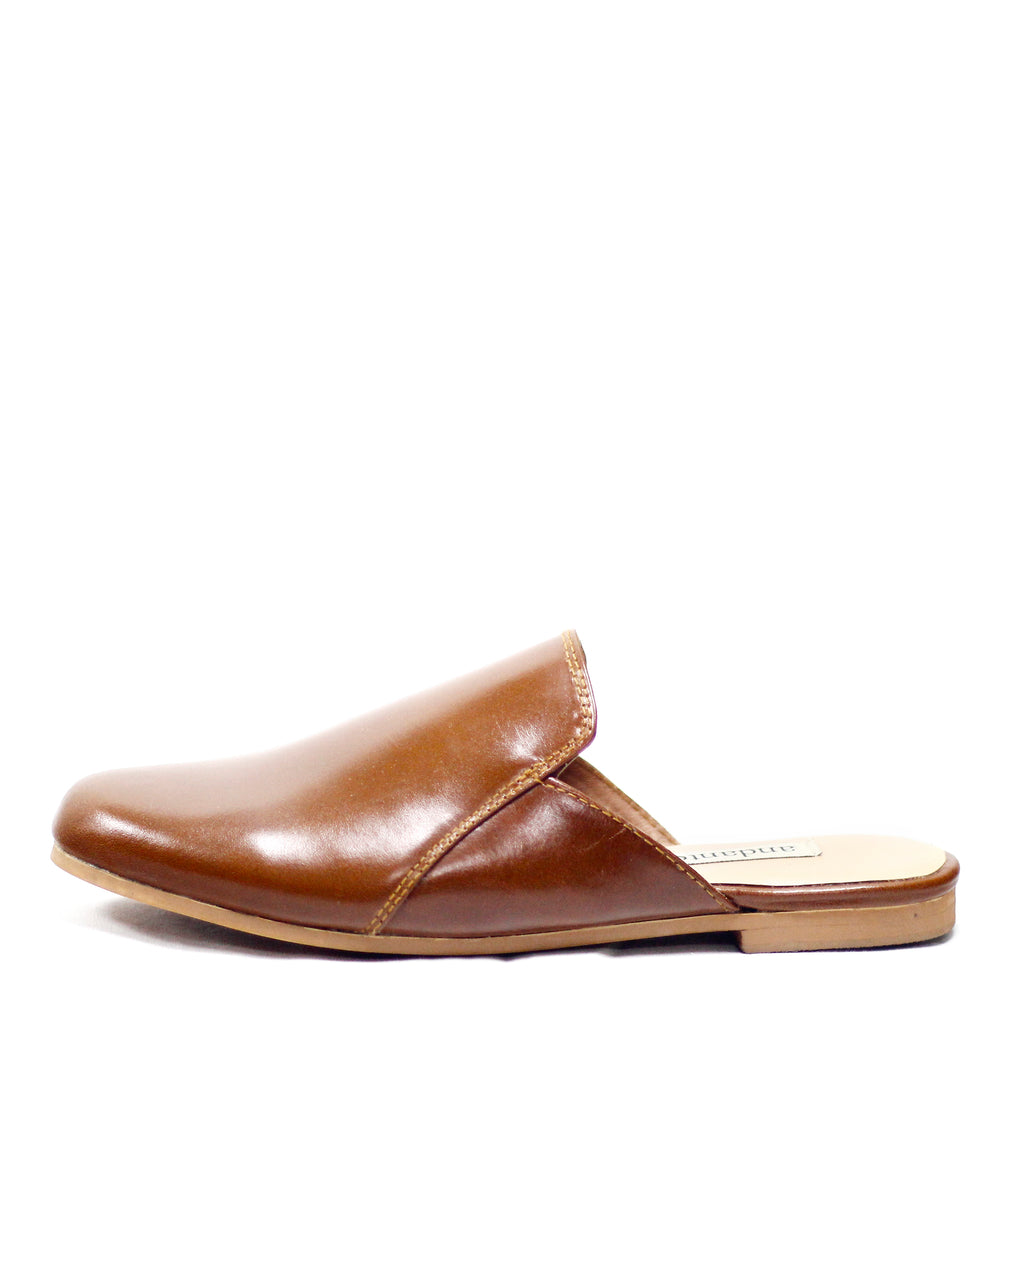 Smoking Slipper in Tan